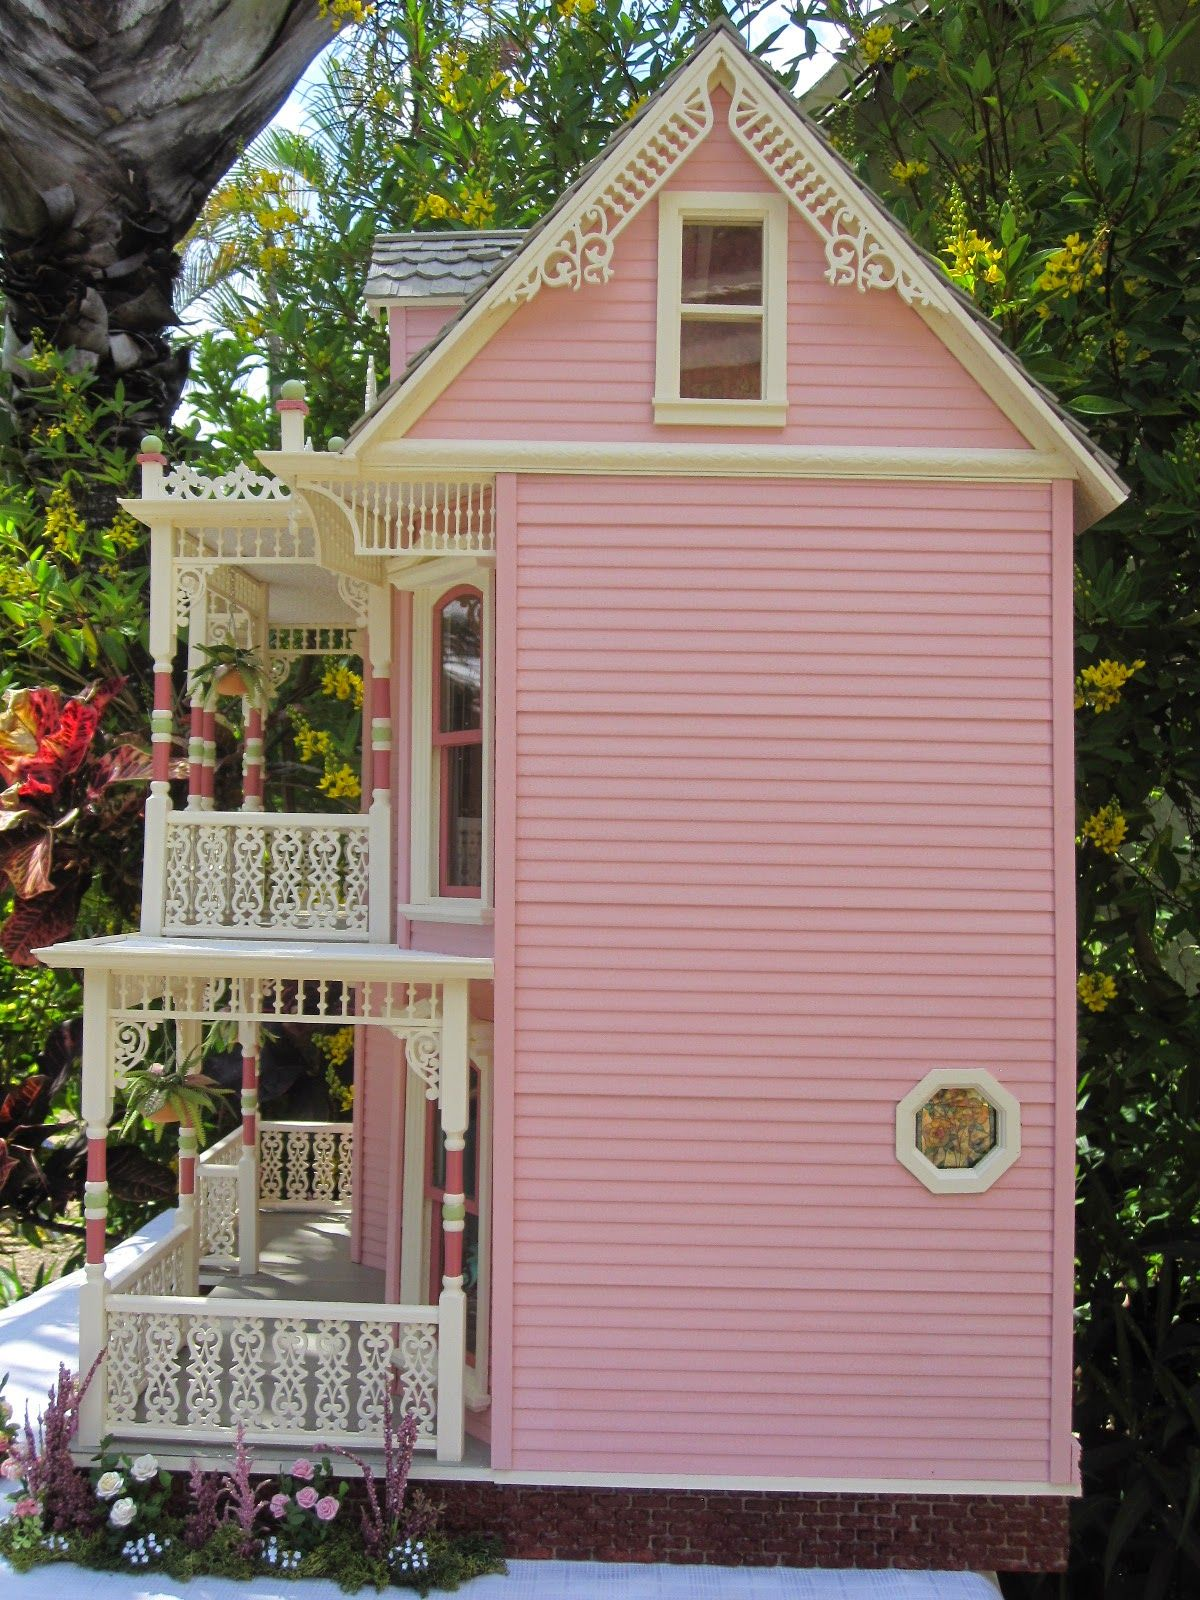 This is the Elizabeth Street Victorian Dollhouse. Description from ...